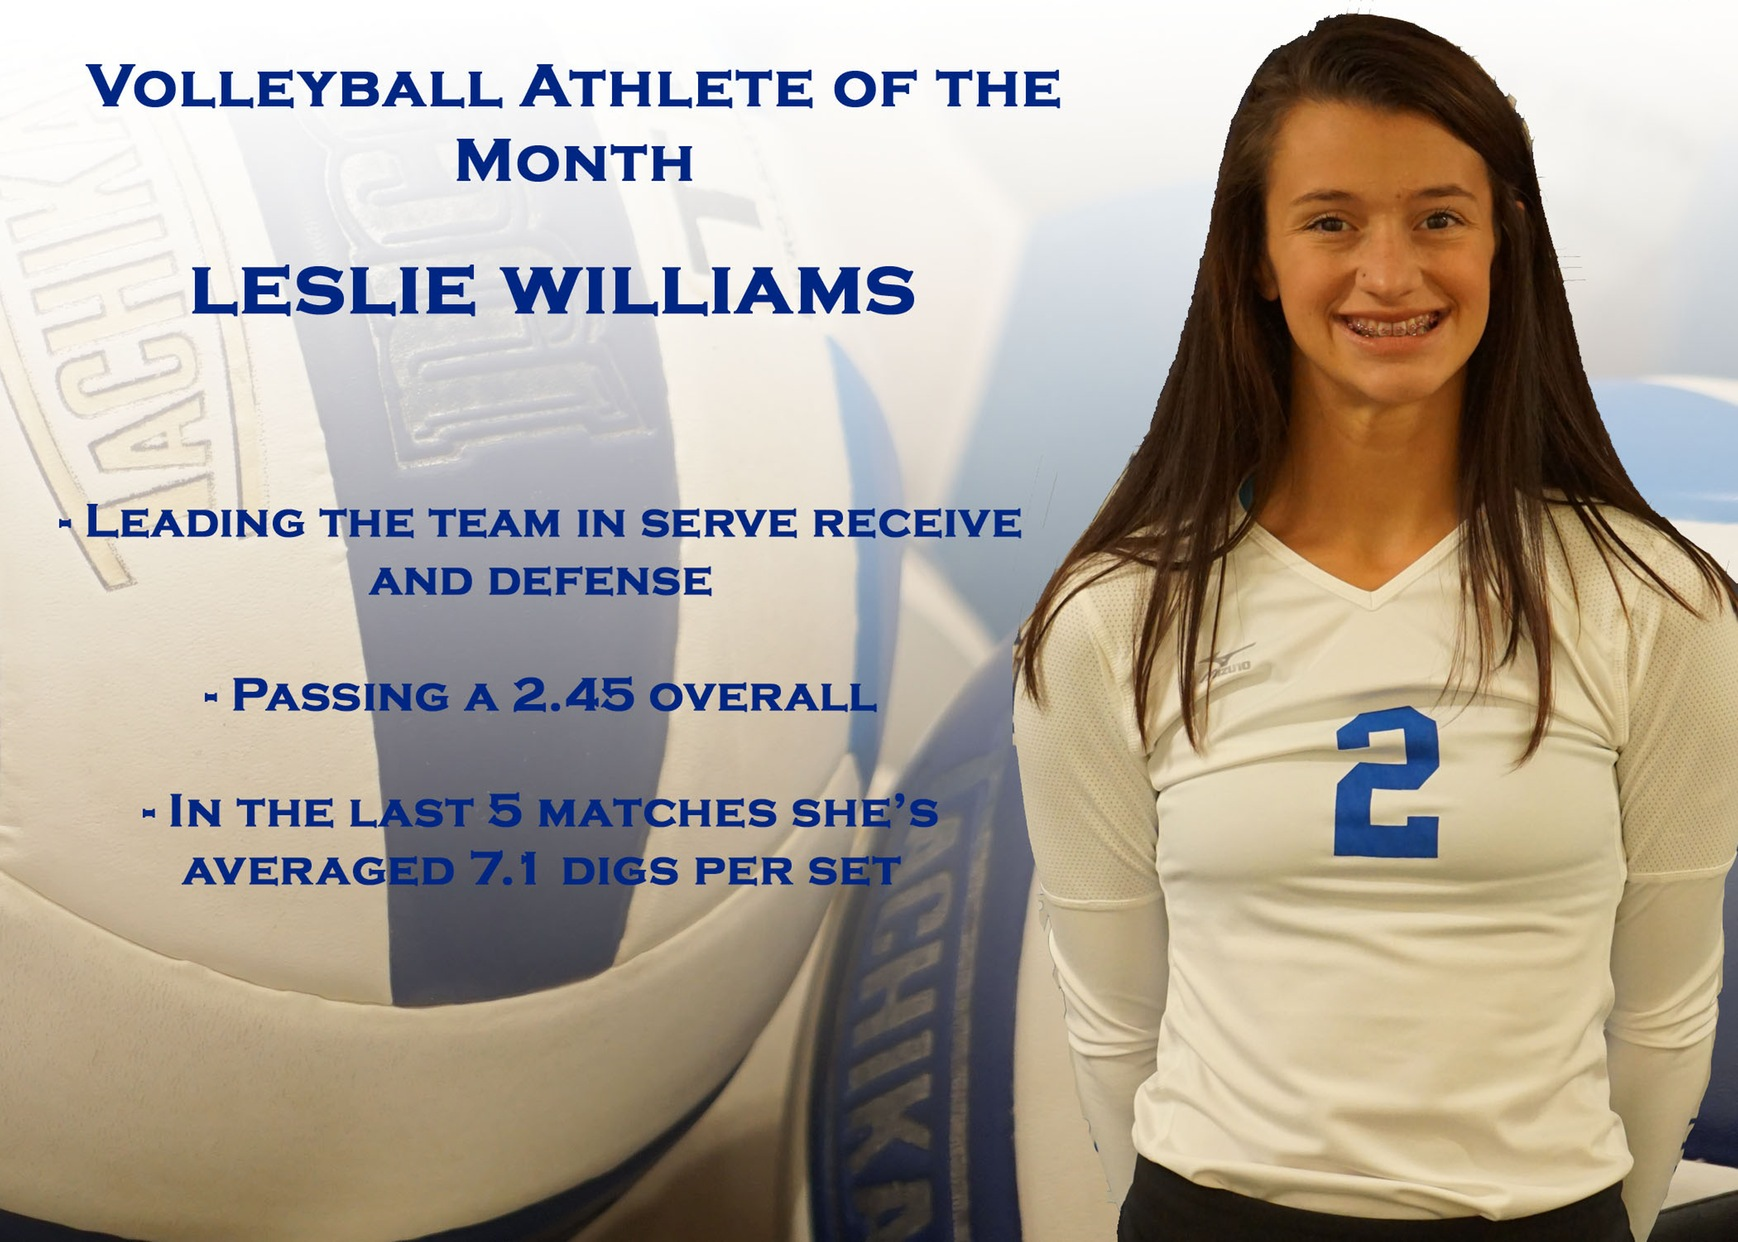 Women's Volleyball Athlete of the Month